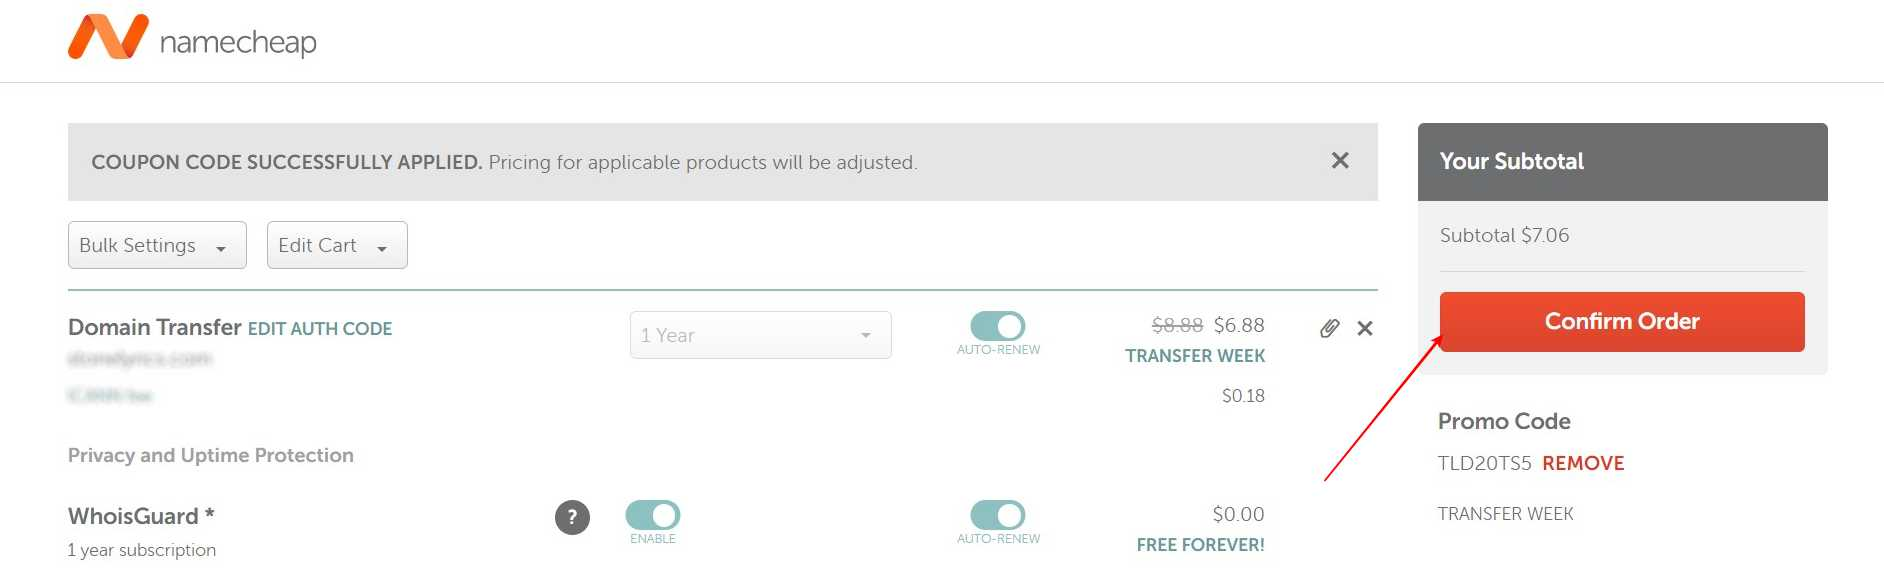 Recheck everything and click Confirm Order